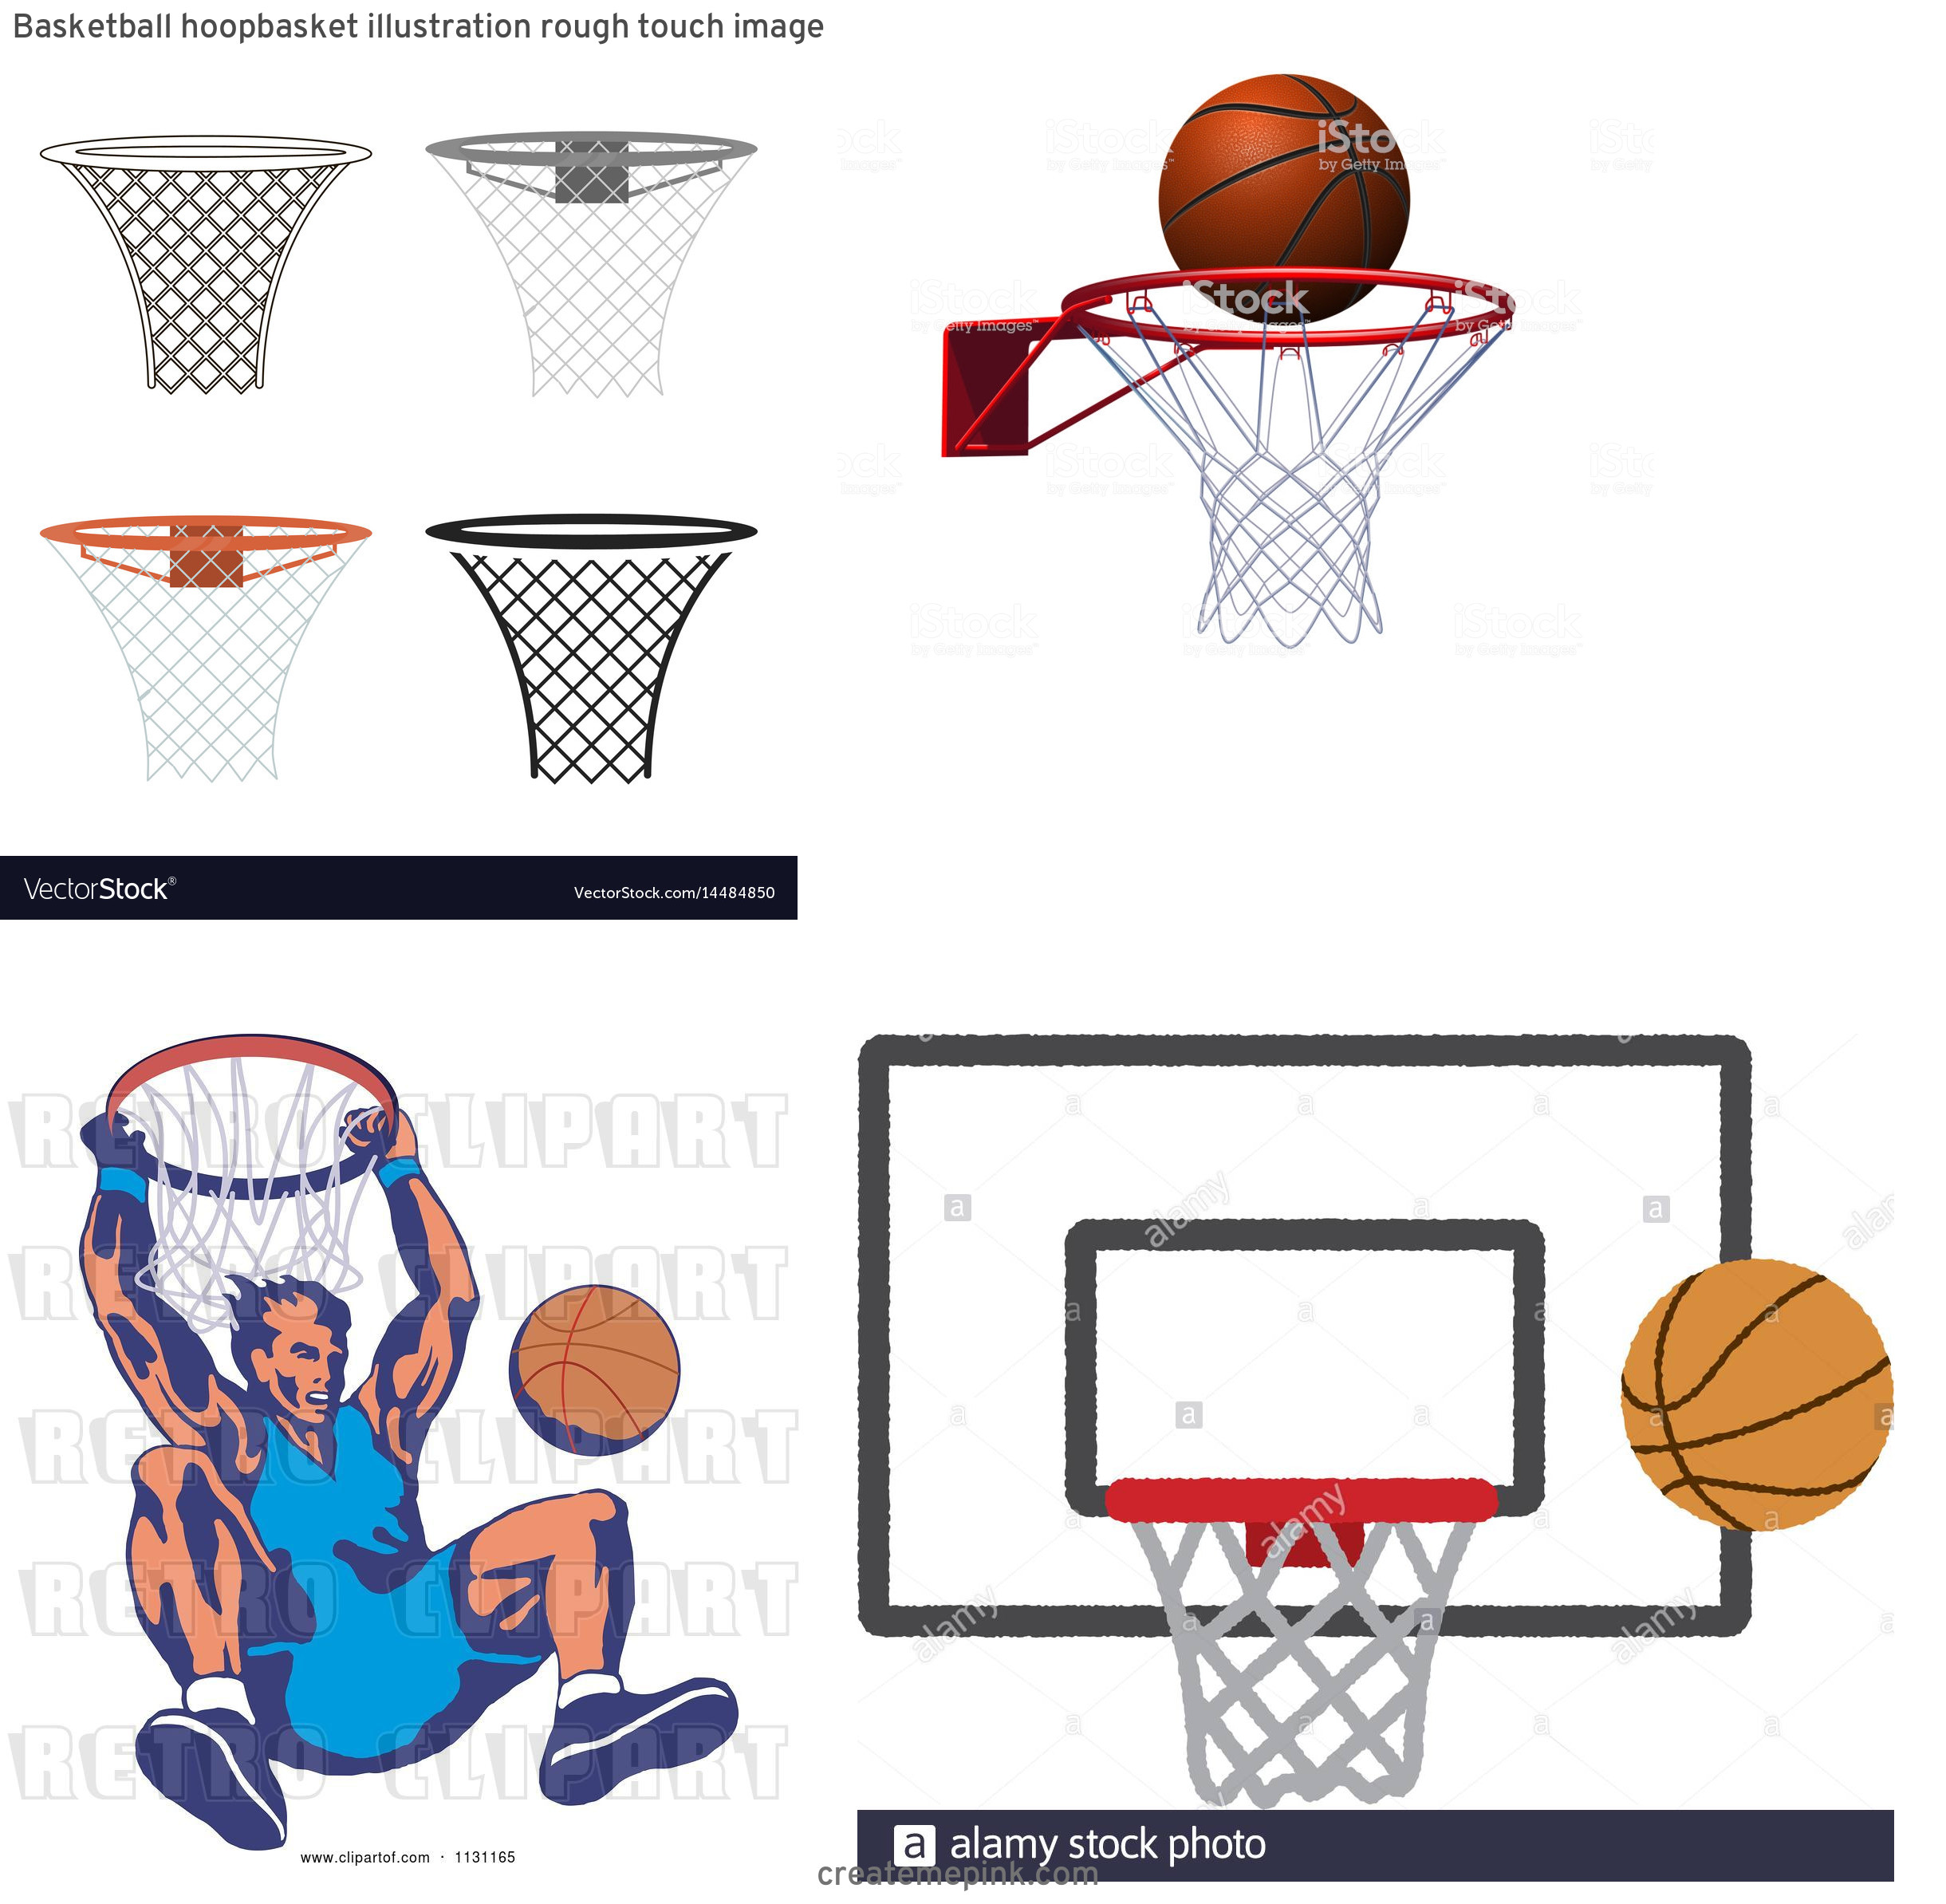 Basketball Vector Art In Hoop: Basketball Hoopbasket Illustration Rough Touch Image